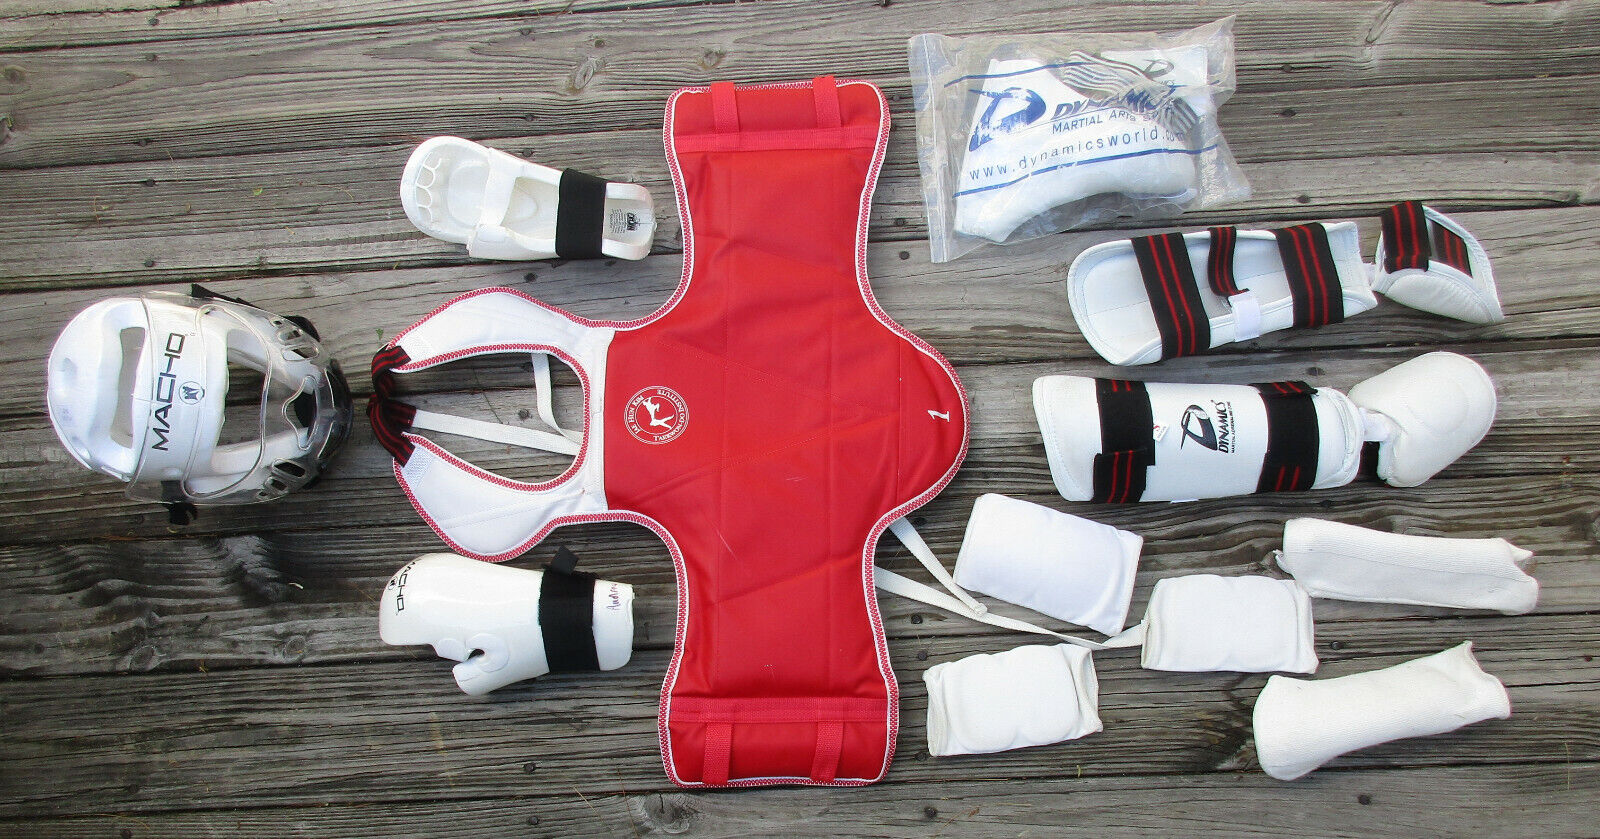 USED MACHO YOUTH Martial Arts Sparing  Gear  KARATE, TAEKWON-DO  HELMET CHEST  order now with big discount & free delivery